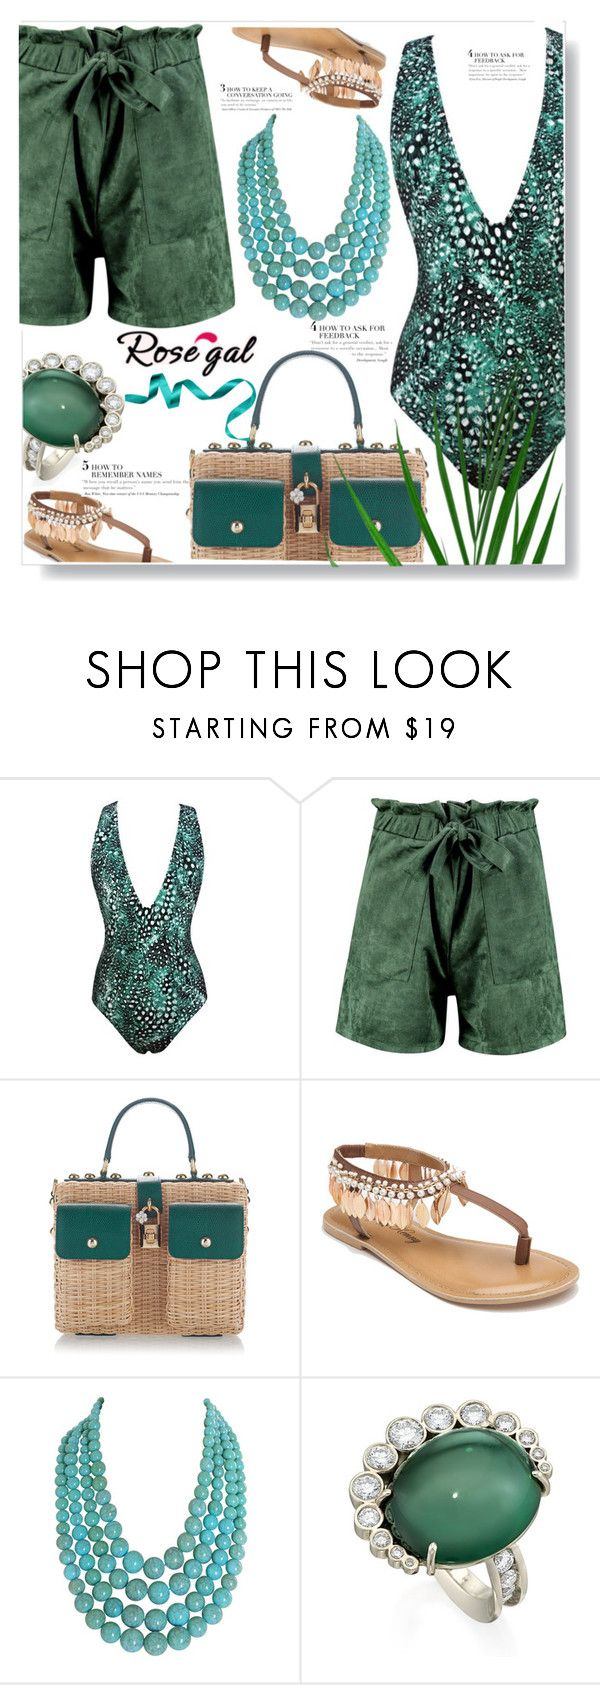 """""""Swimmwear"""" by ucetmal-1 ❤ liked on Polyvore featuring Boohoo, Dolce&Gabbana, Penny Loves Kenny and Humble Chic"""